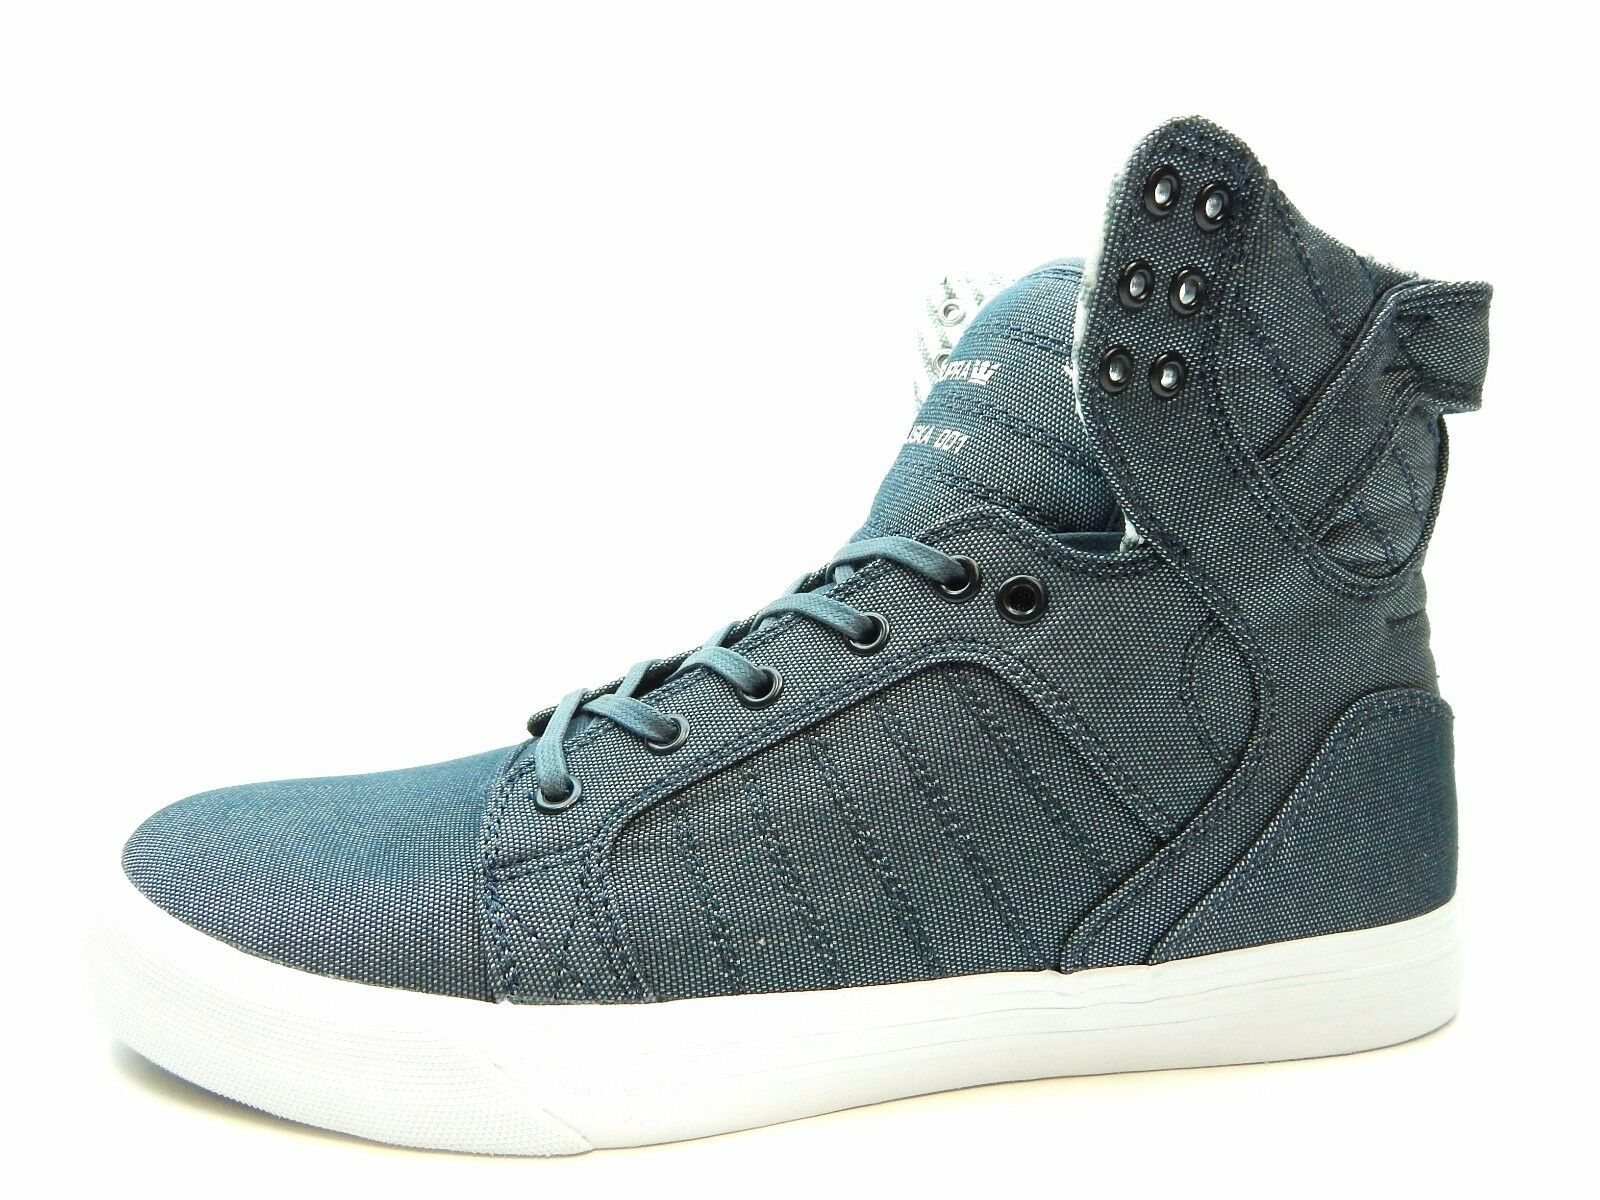 SUPRA SKYTOP bleu blanc 08002-427-M hommes Chaussures SIZE 8 TO 13